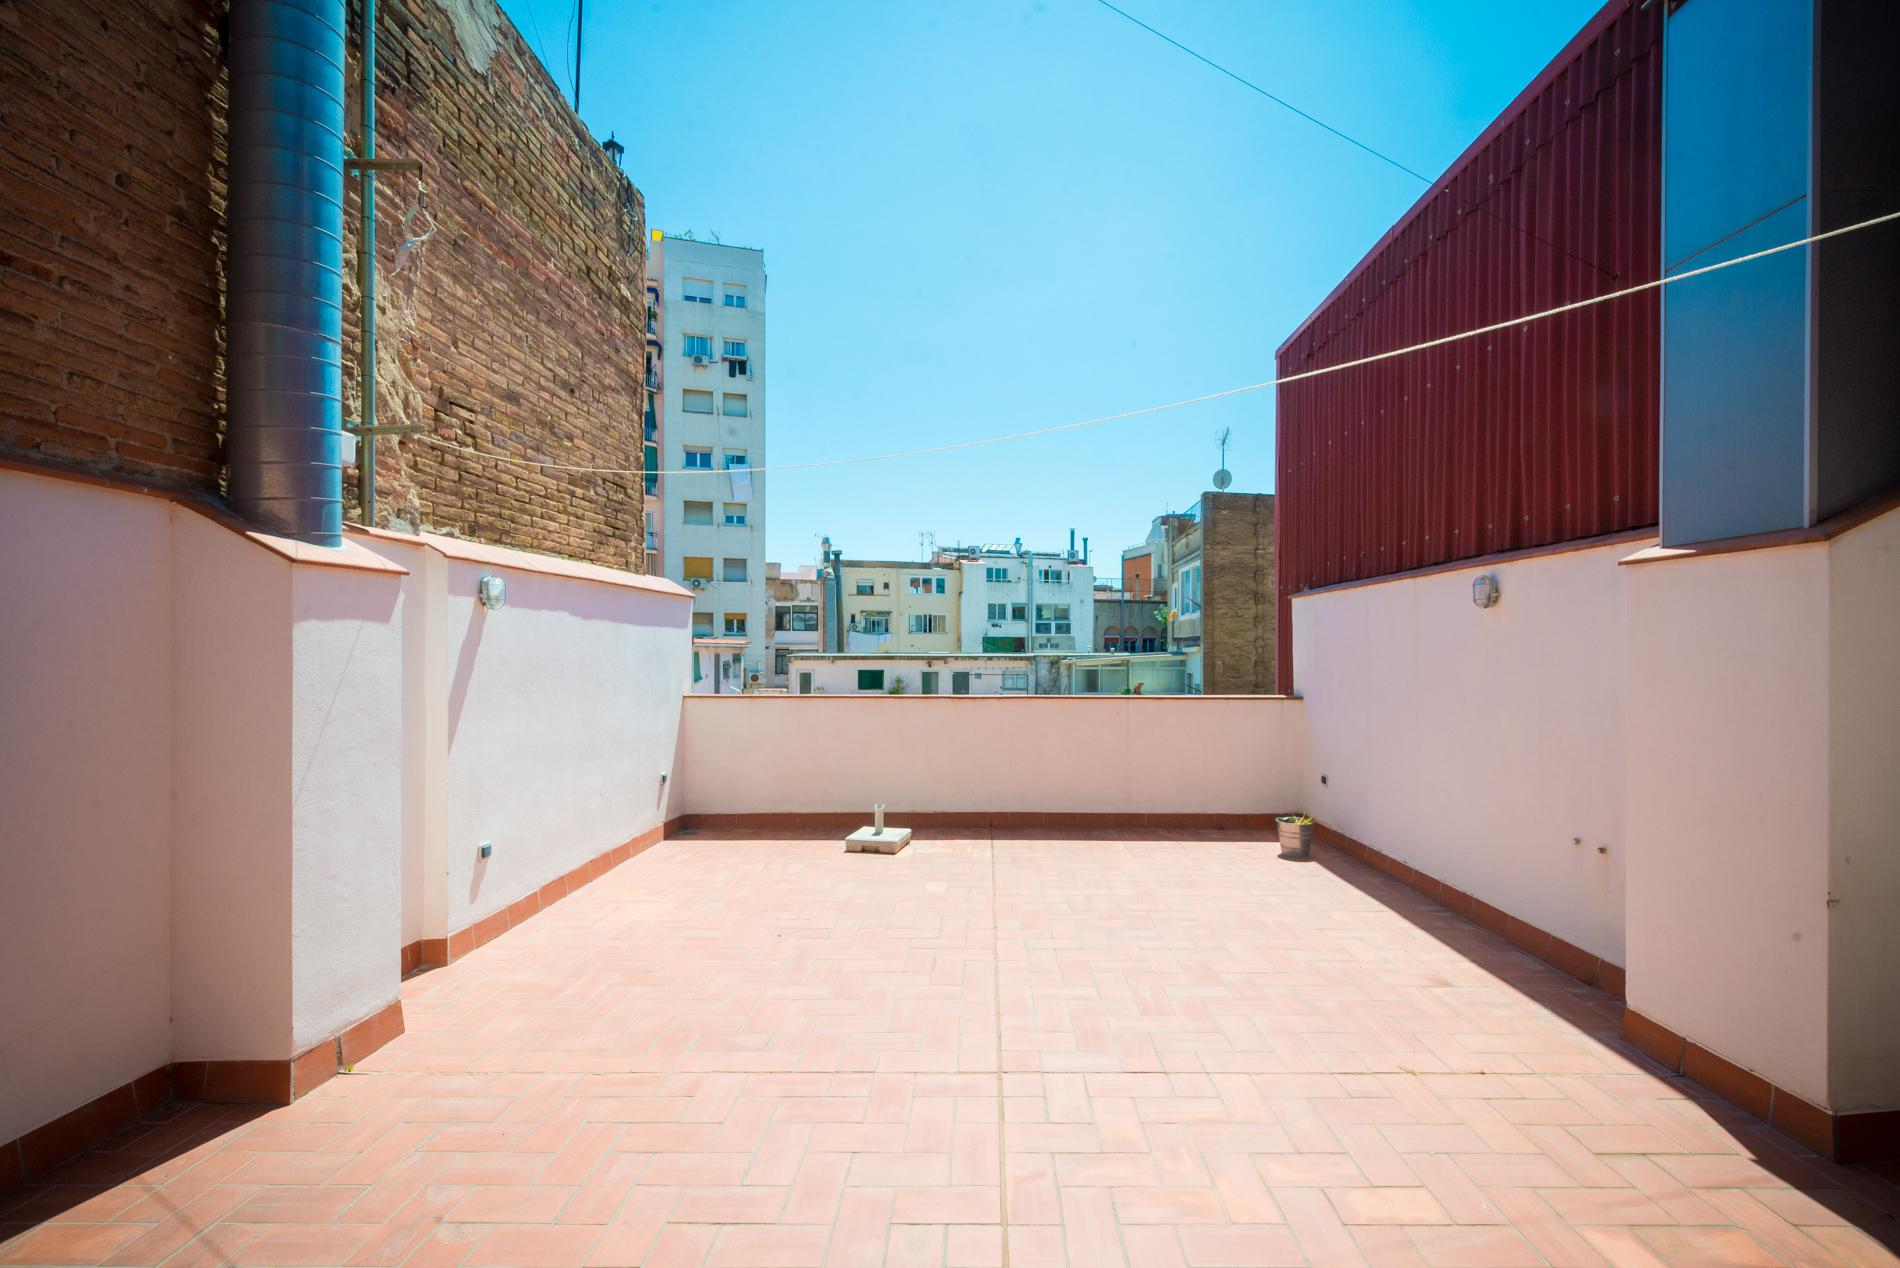 239277 Semi-detached house for sale in Sants-Montjuïc, Sants 17